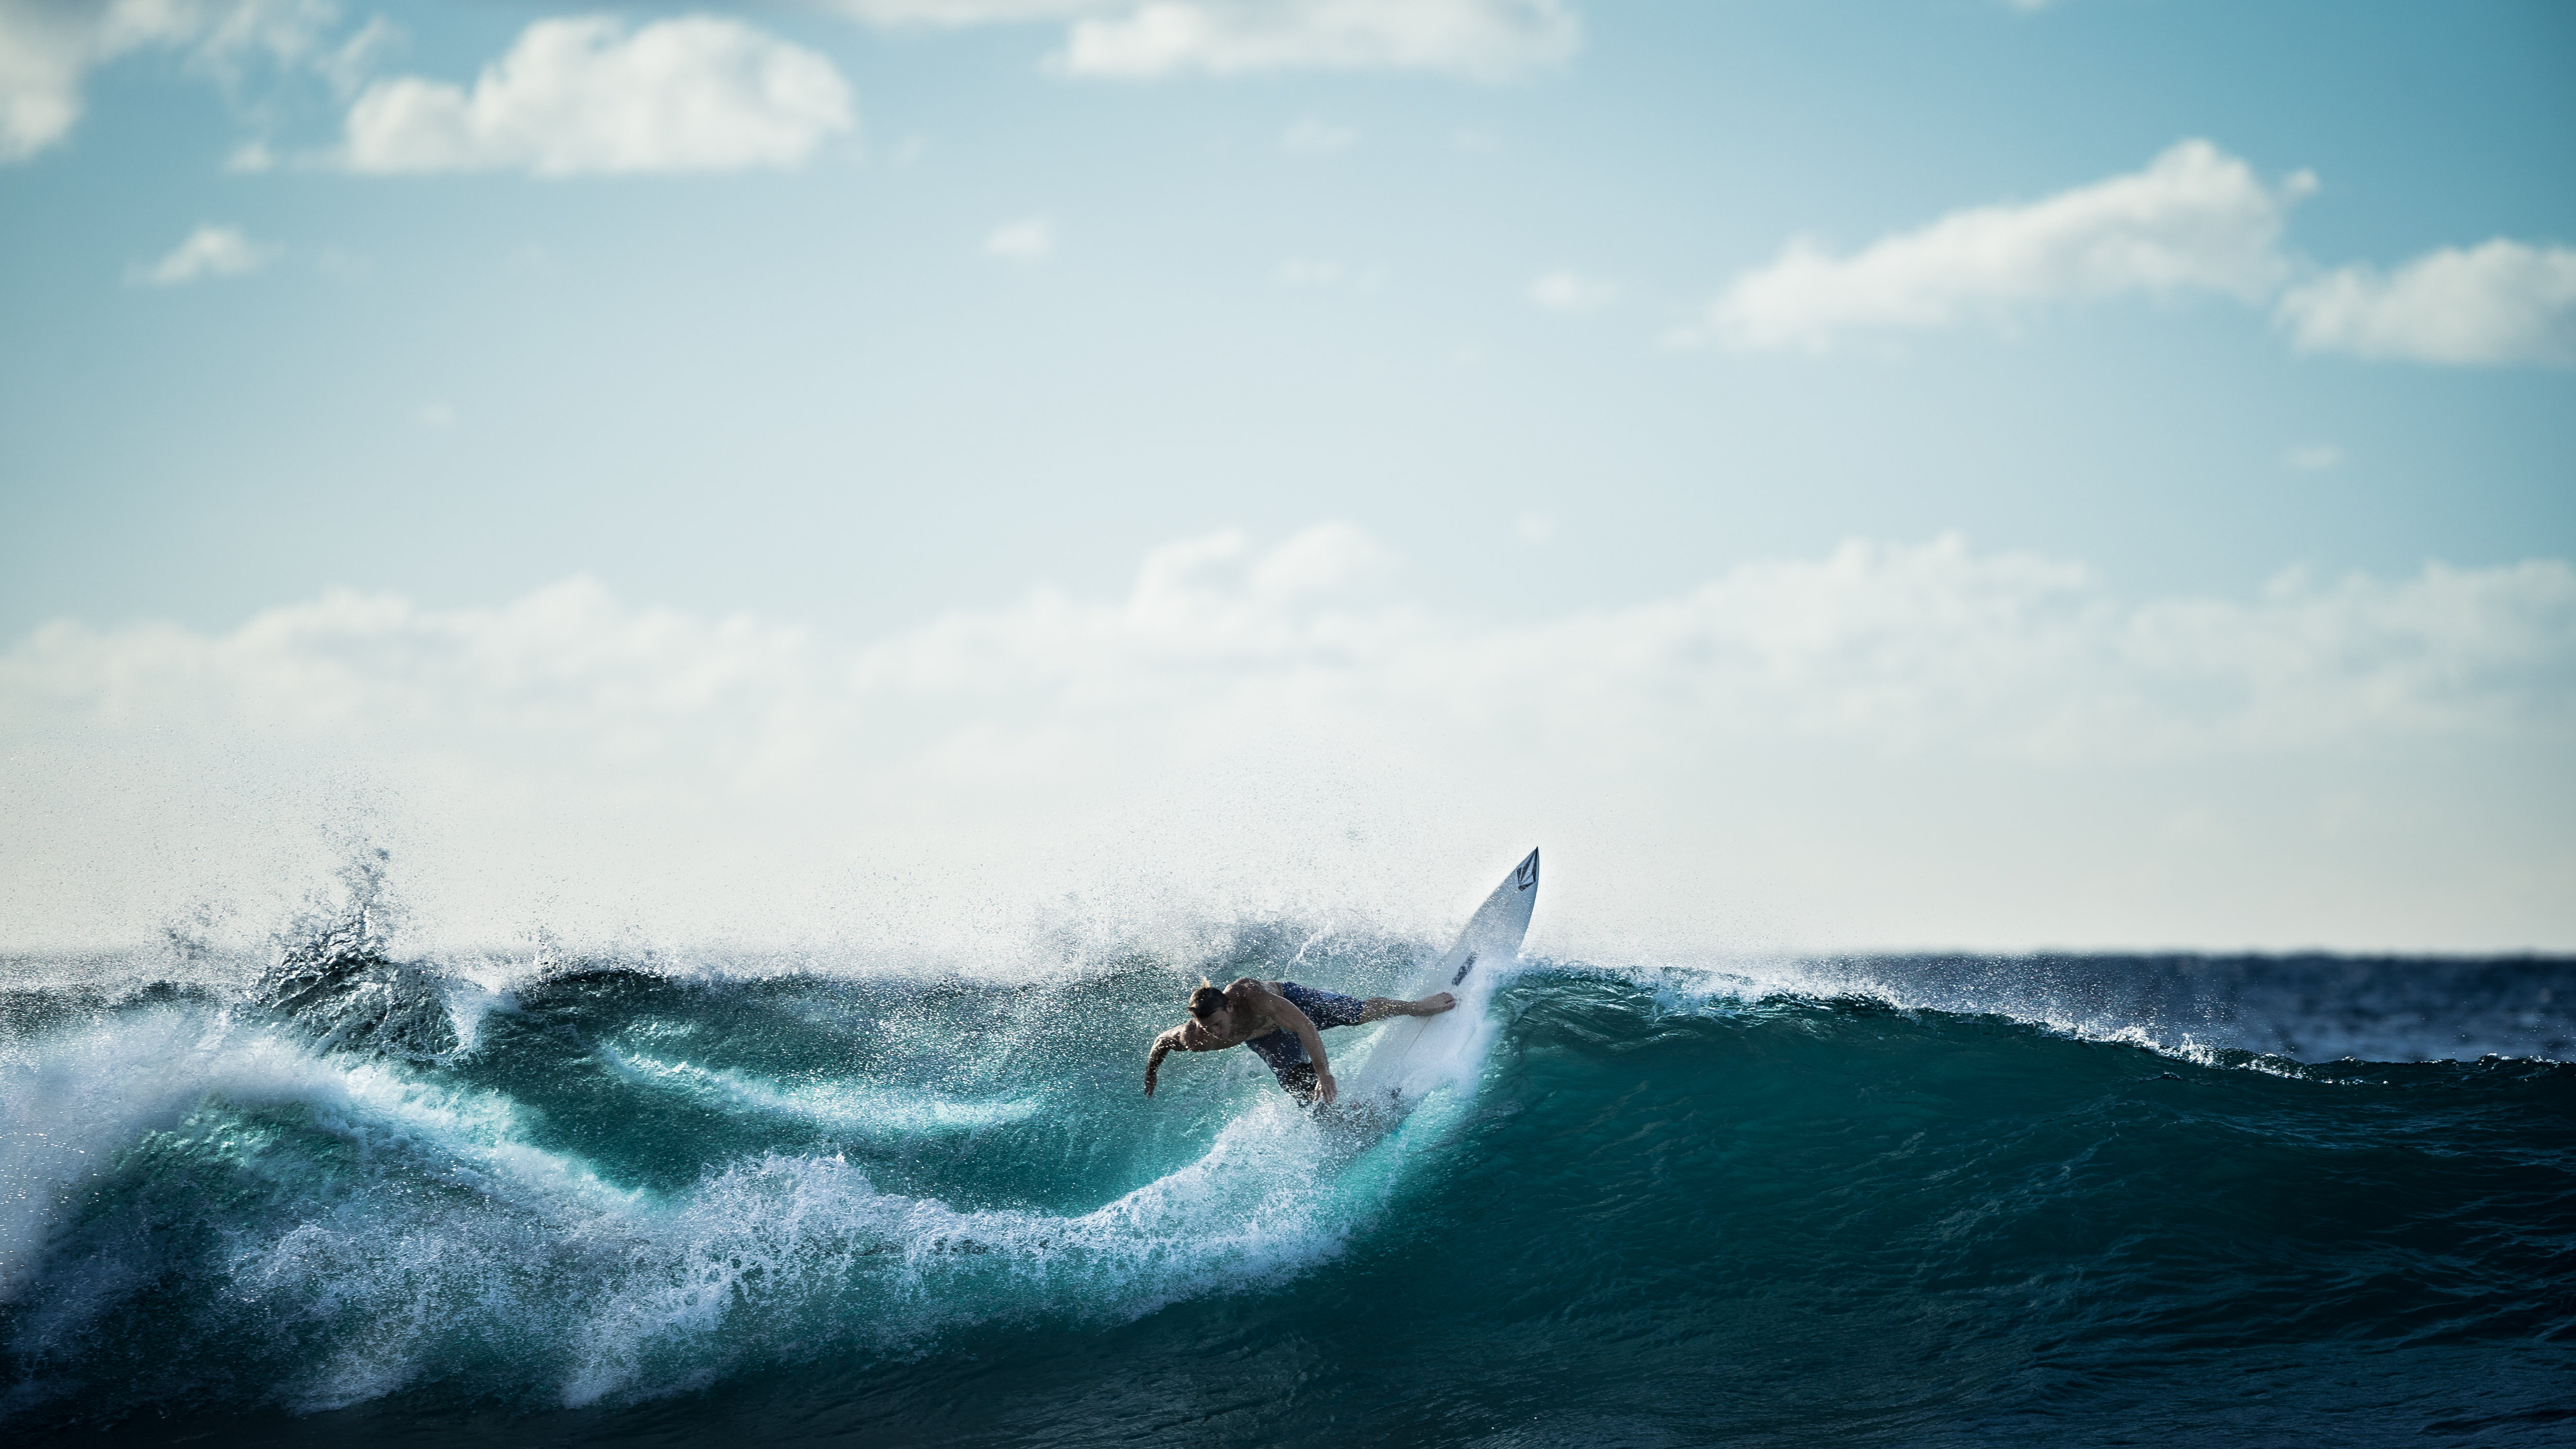 Surfing, waves, water, surfer, wave, ocean, sea, water, sports, fitness, sky, clouds